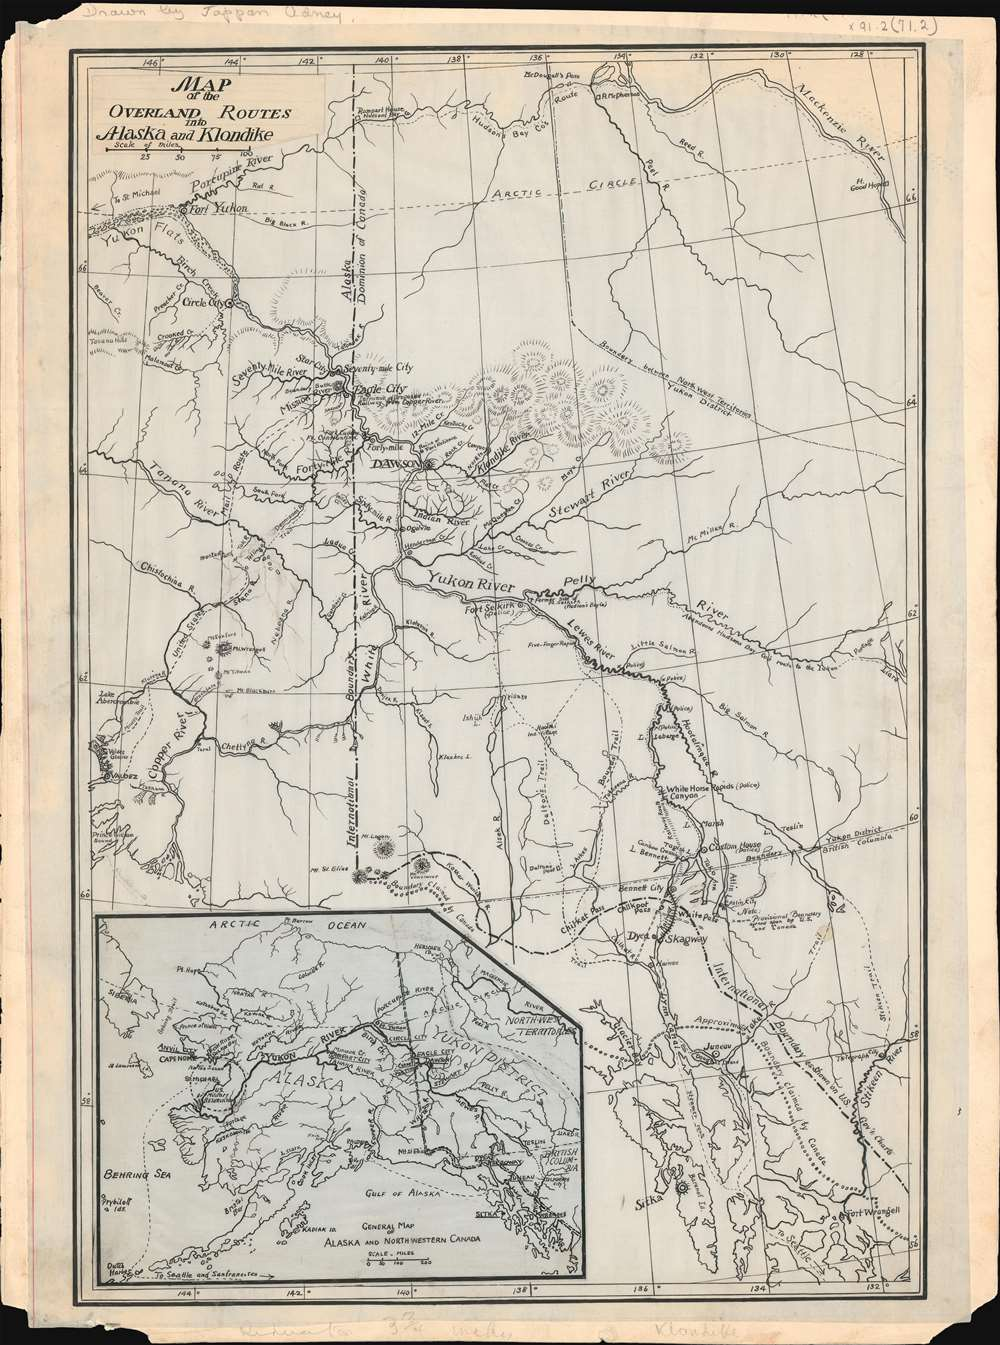 Map of th Overland Routes into Alaska and Klondike.